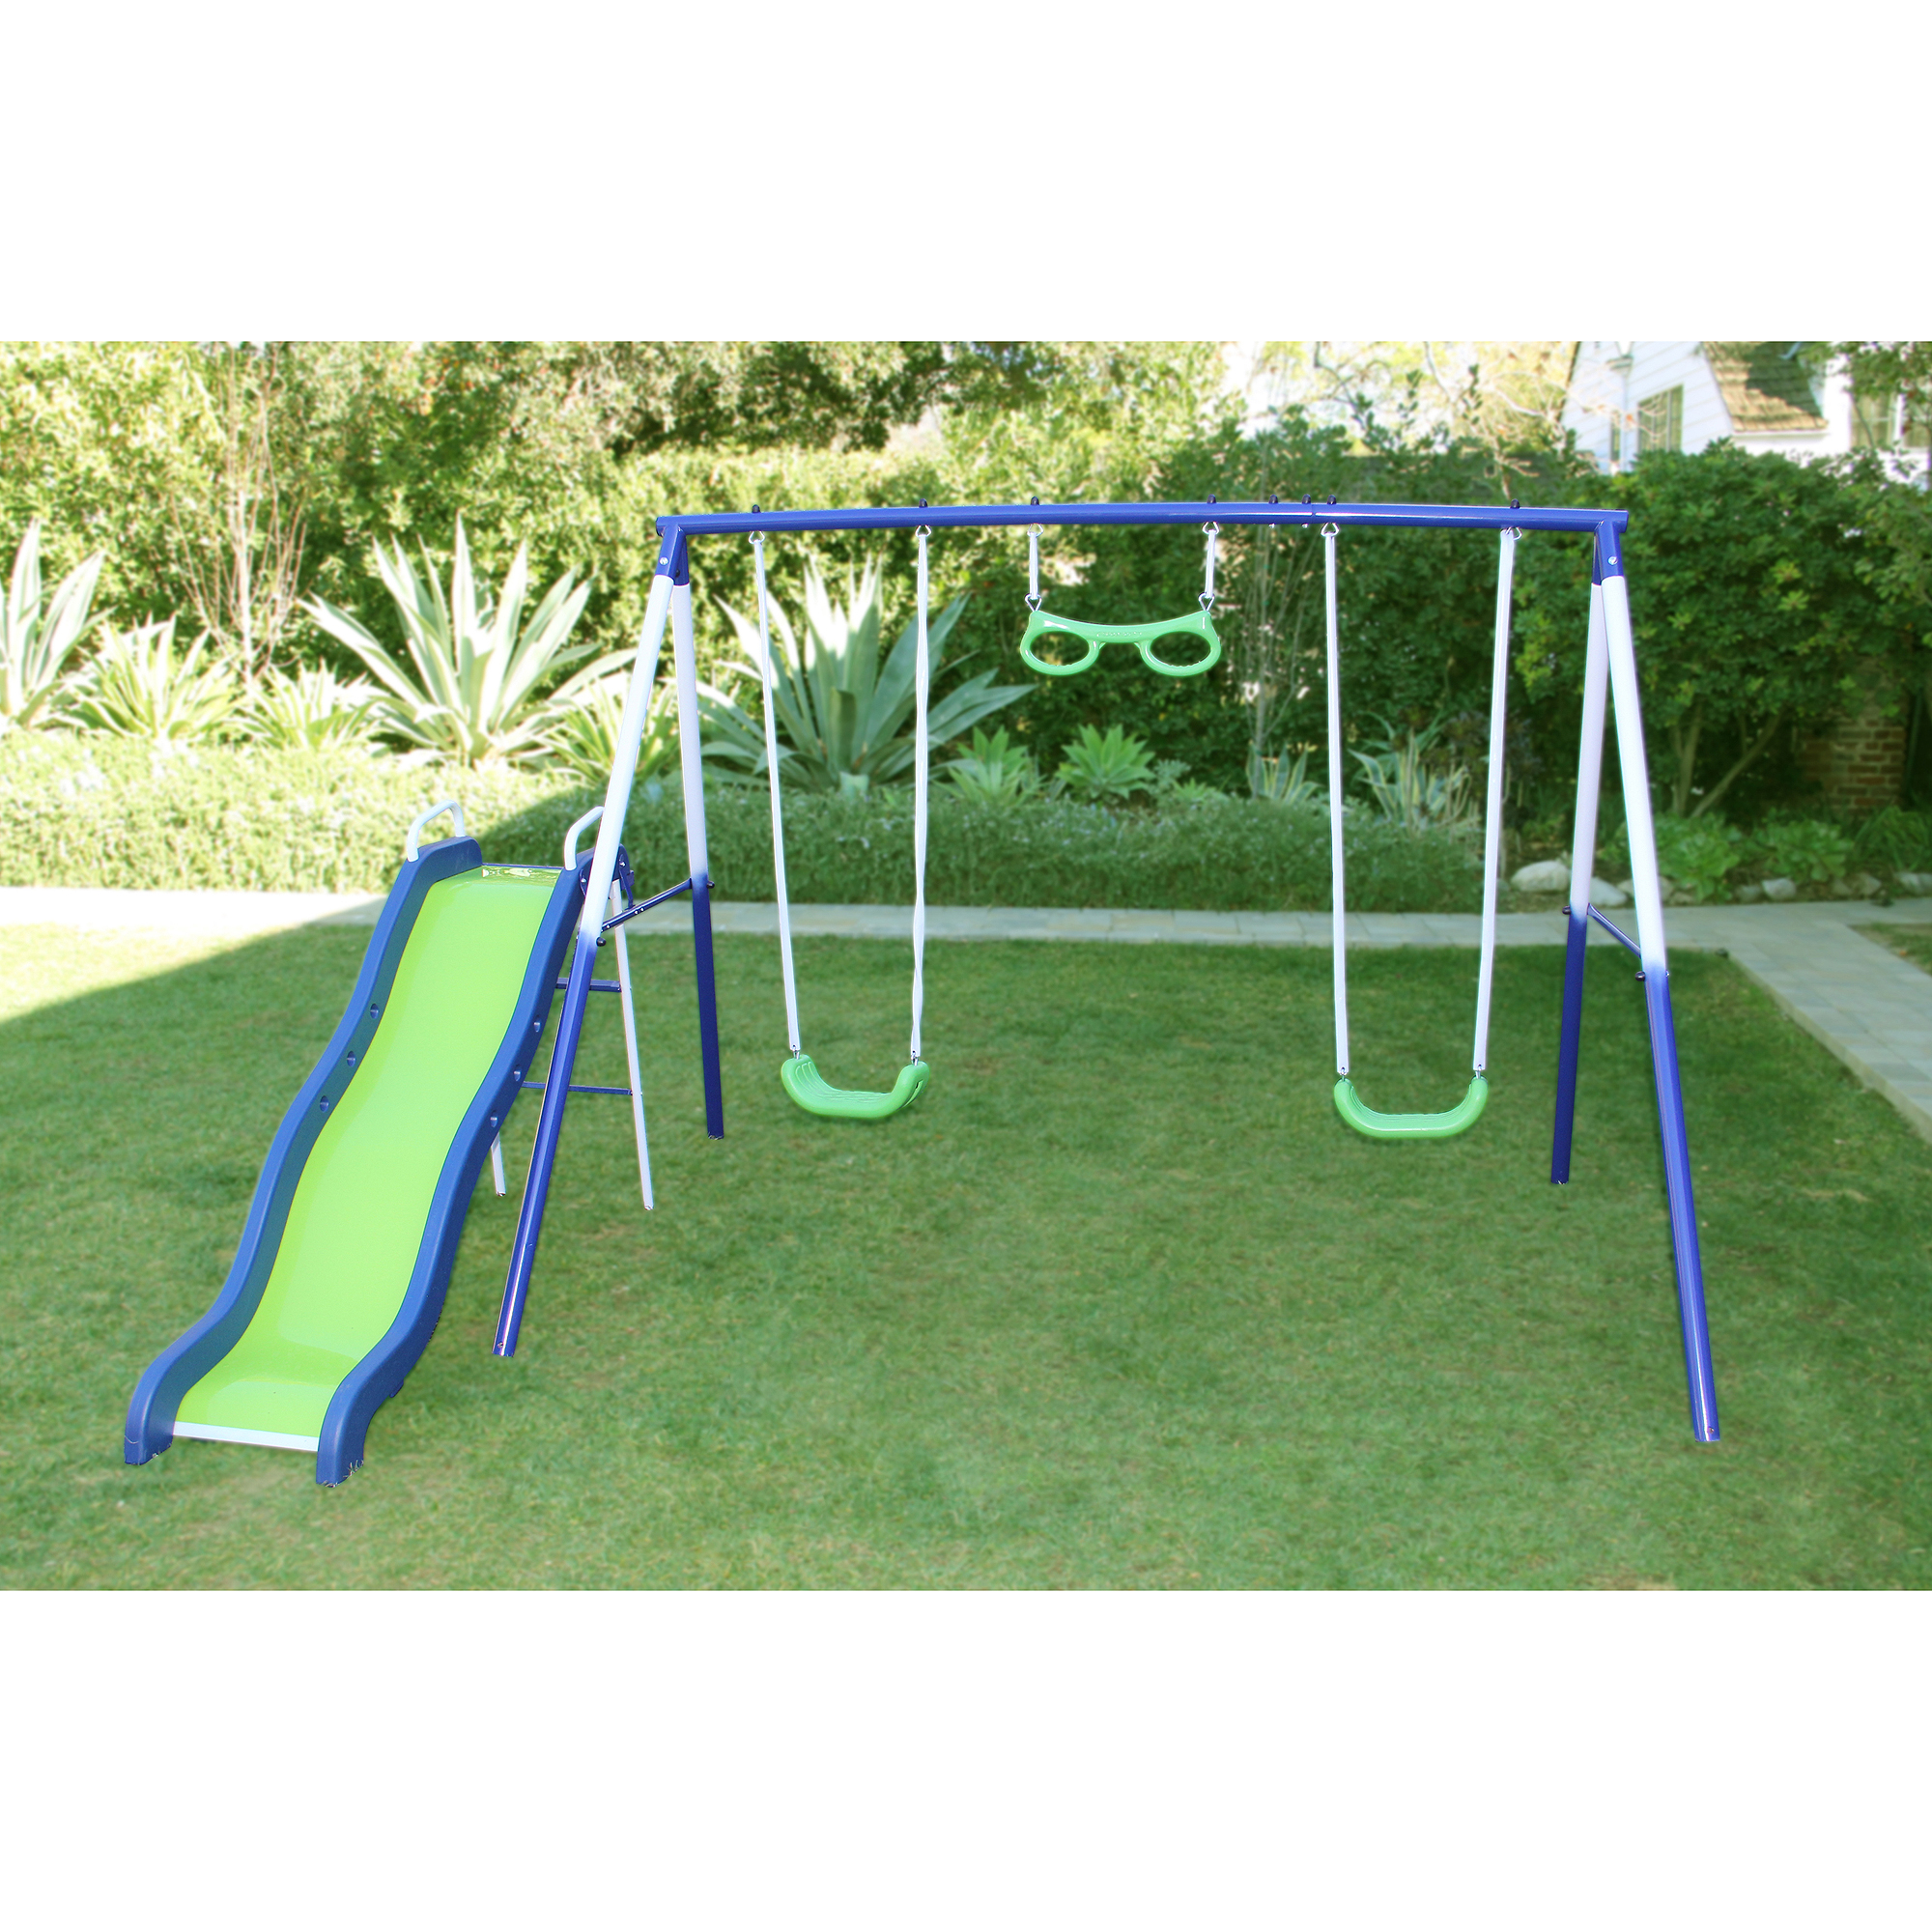 adventure reviews sets ifetime bar baby metal top best monkey set swings lifetime swing